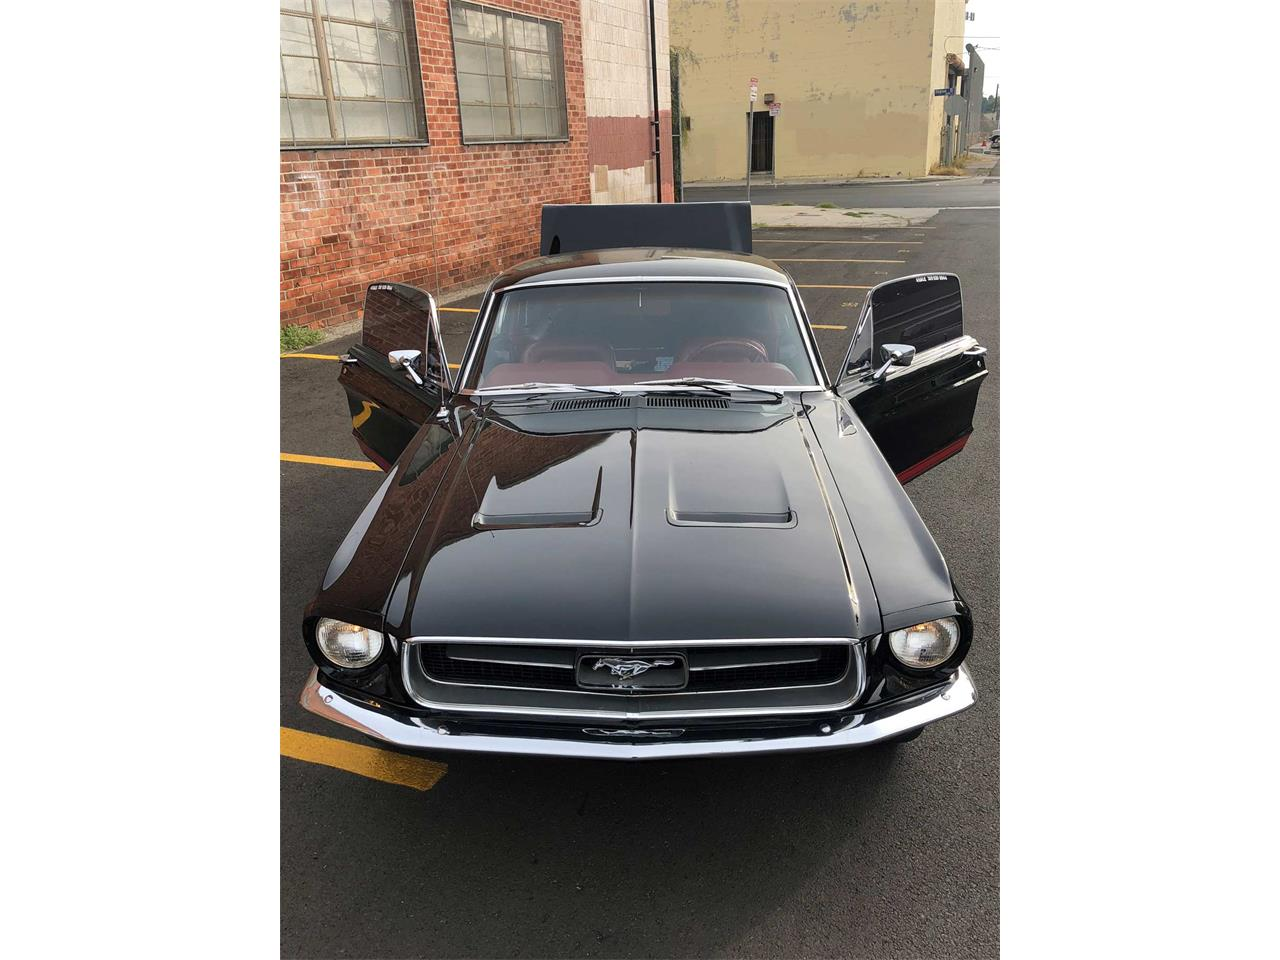 Large Picture of 1967 Mustang located in West Hollywood California - $49,000.00 Offered by MP Classics World - NMZZ